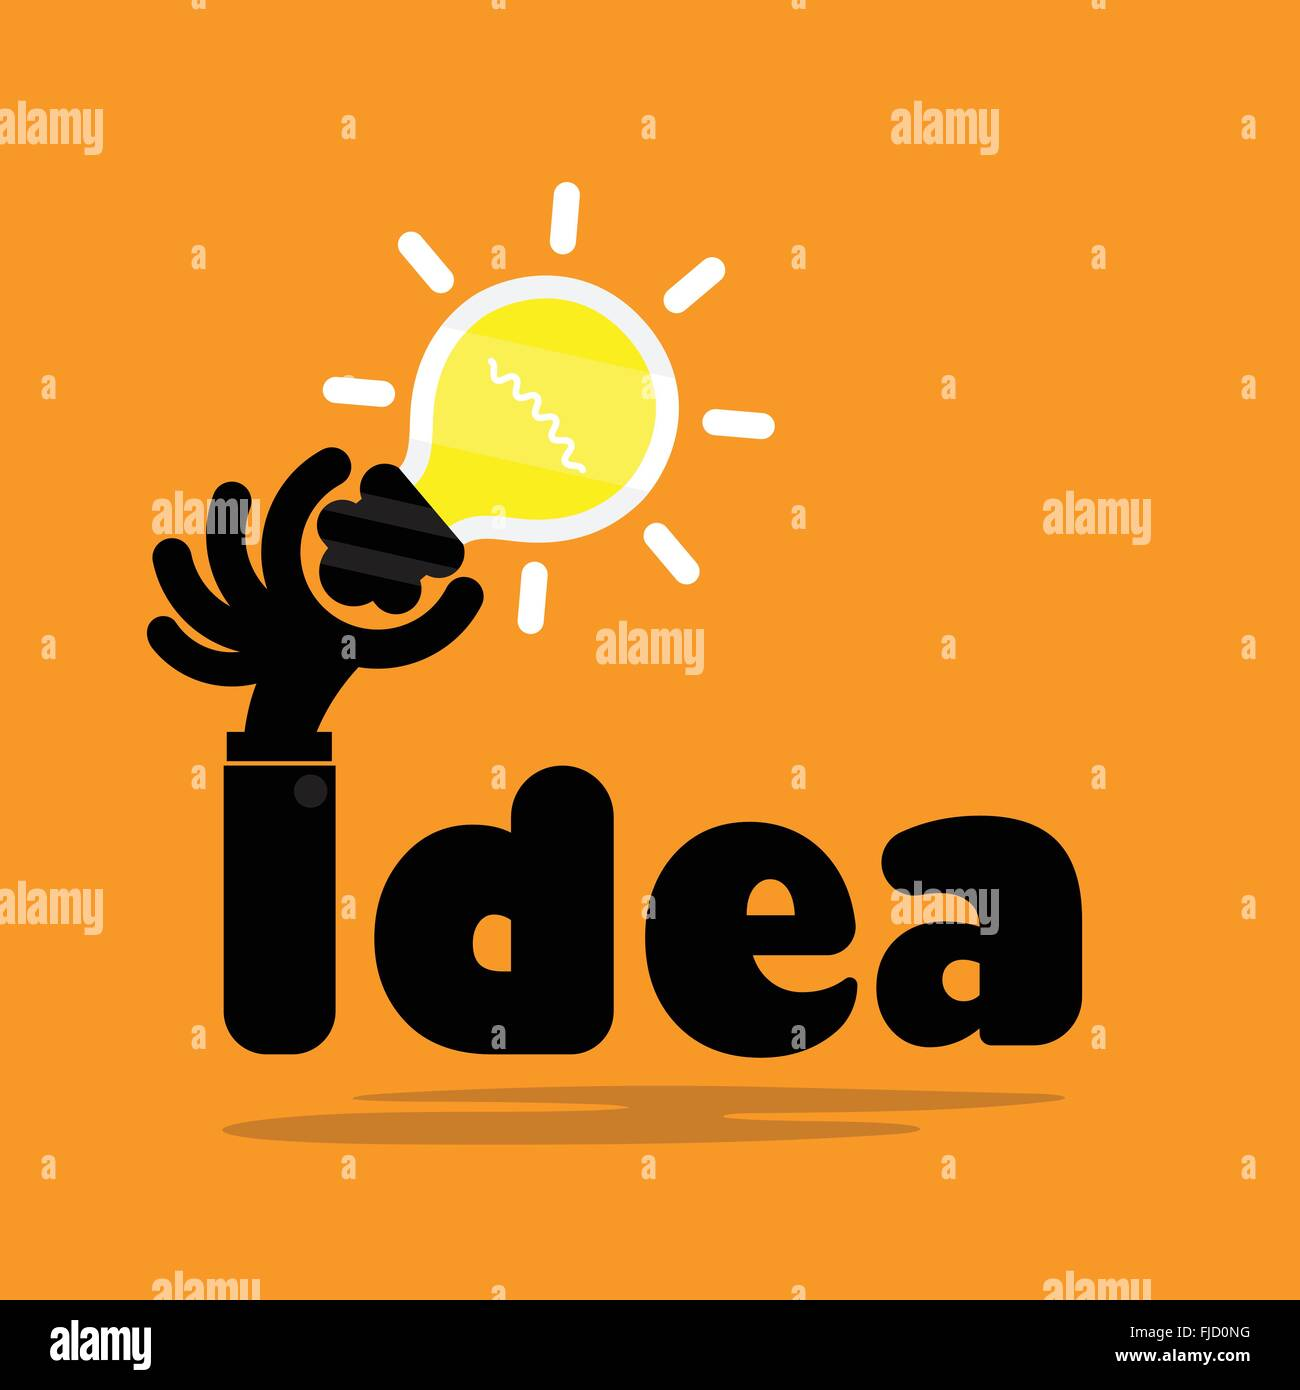 Creative Bulb Light Ideaflat DesignConcept Of Ideas Inspiration Innovation Invention Effective Thinking Knowledge